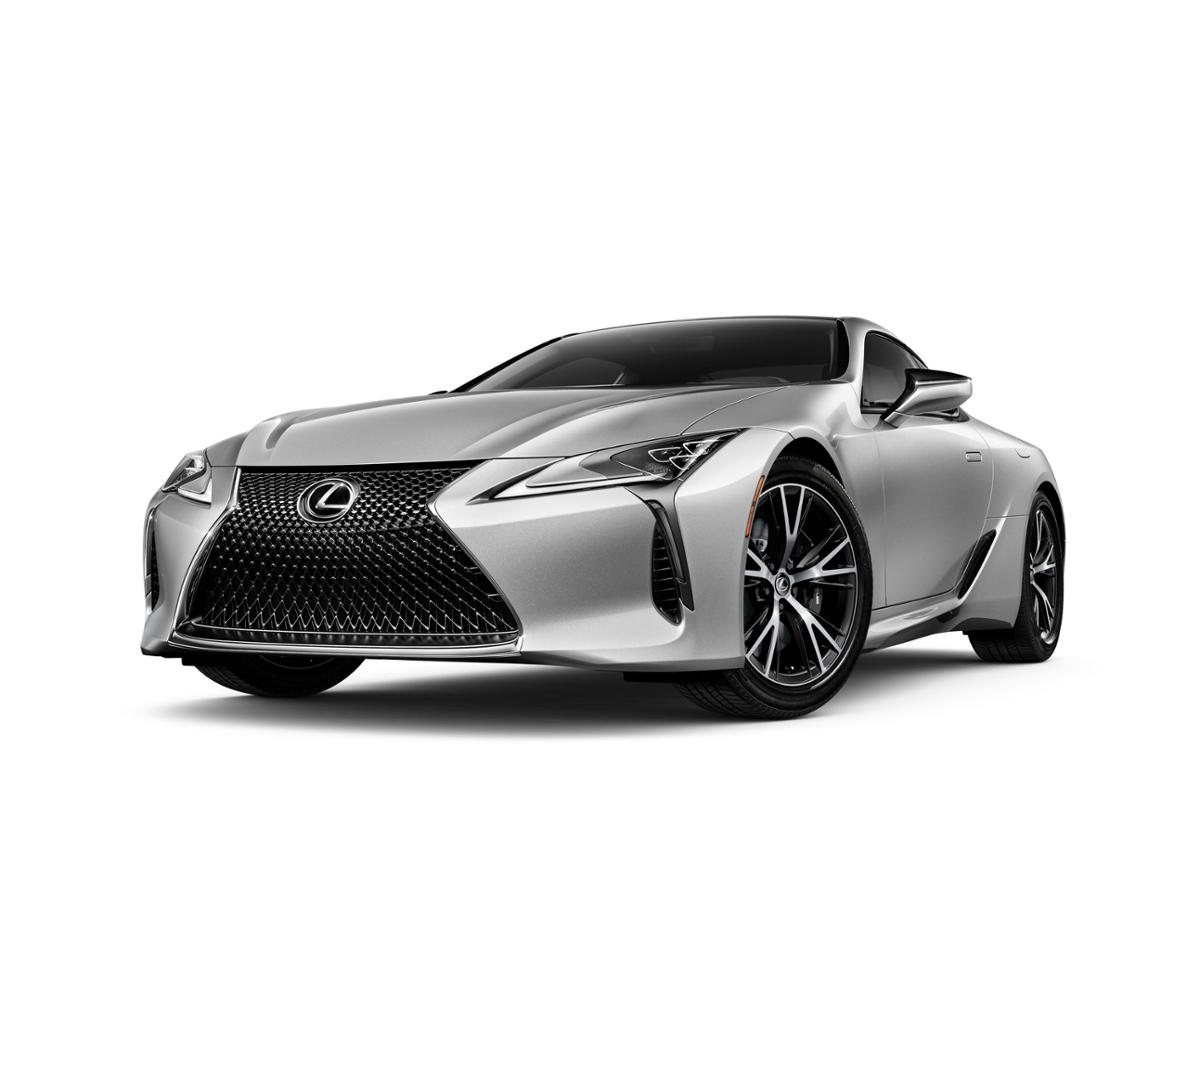 2018 Lexus LC 500 Vehicle Photo in Mission Viejo, CA 92692